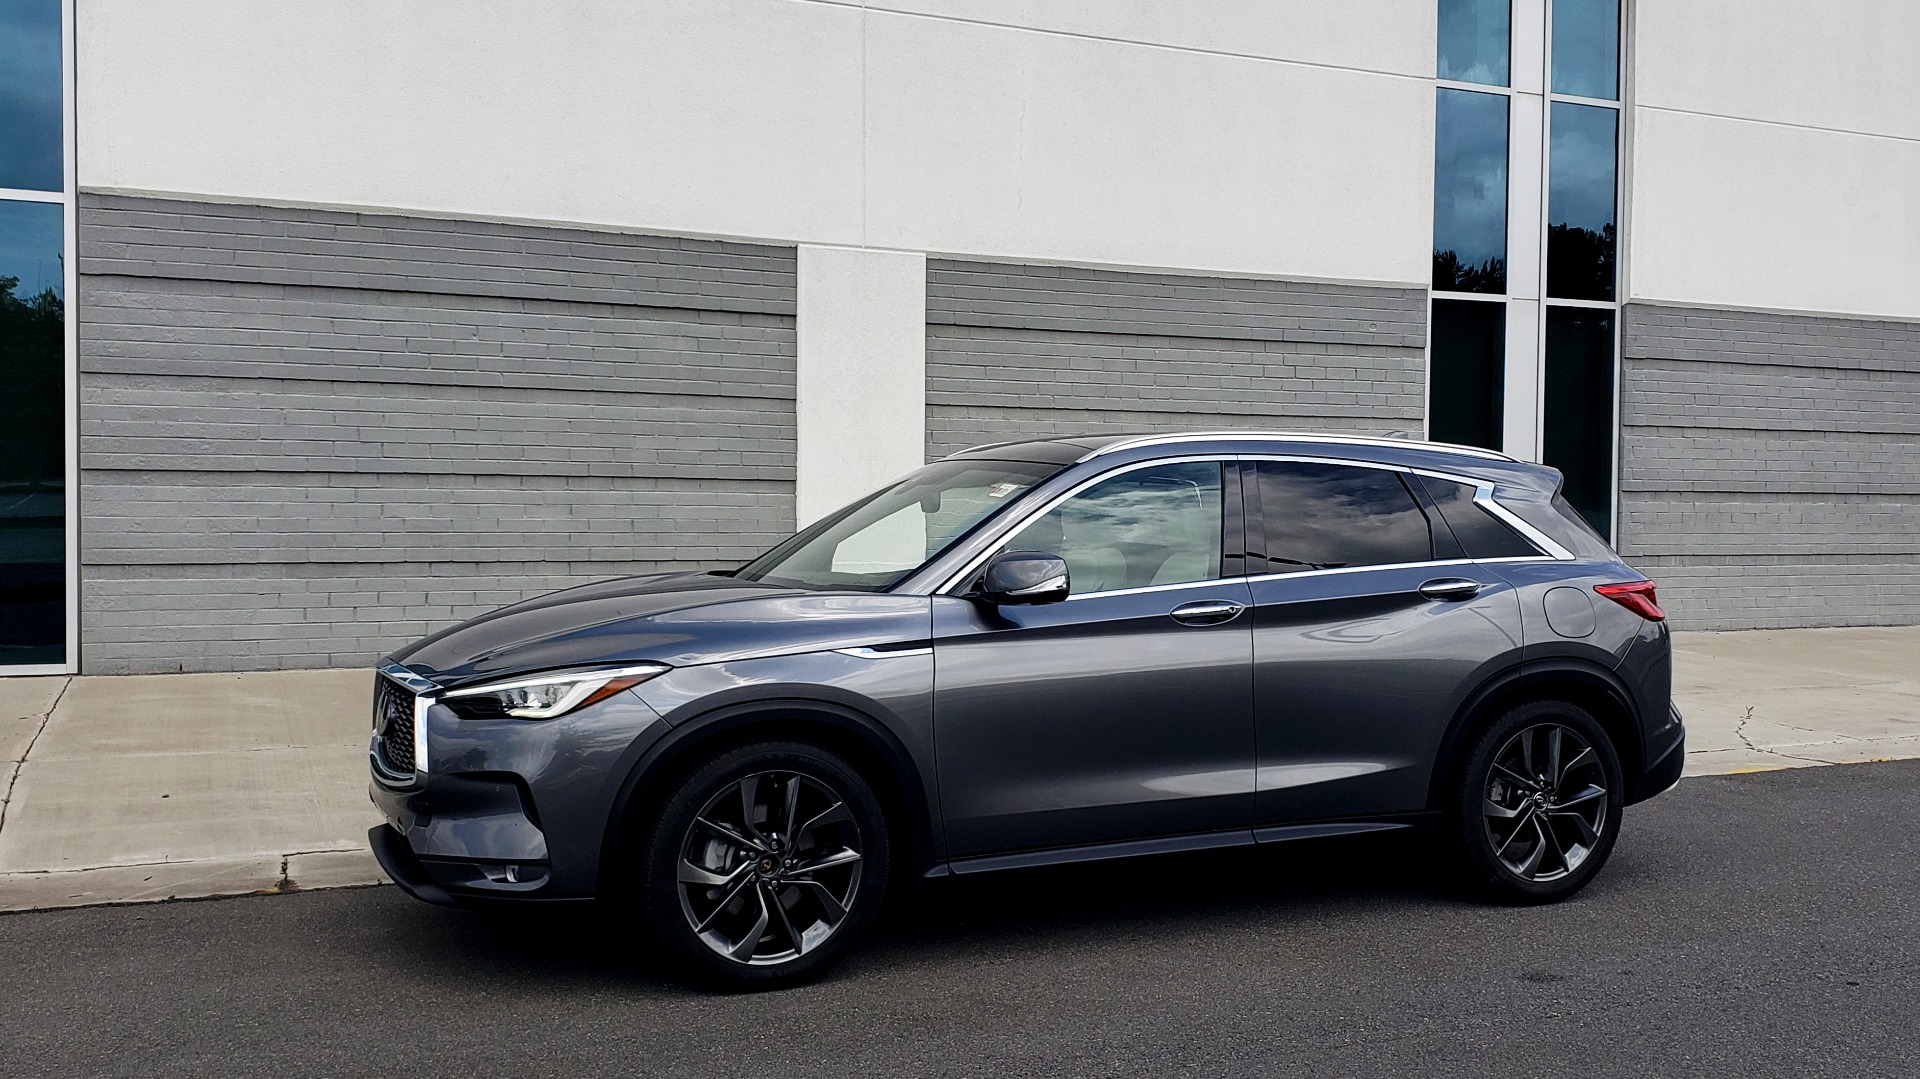 Used 2019 INFINITI QX50 ESSENTIAL / 2.0L / PROASSIST / PROACTIVE / AUTOGRAPH / SENSORY for sale $33,995 at Formula Imports in Charlotte NC 28227 4